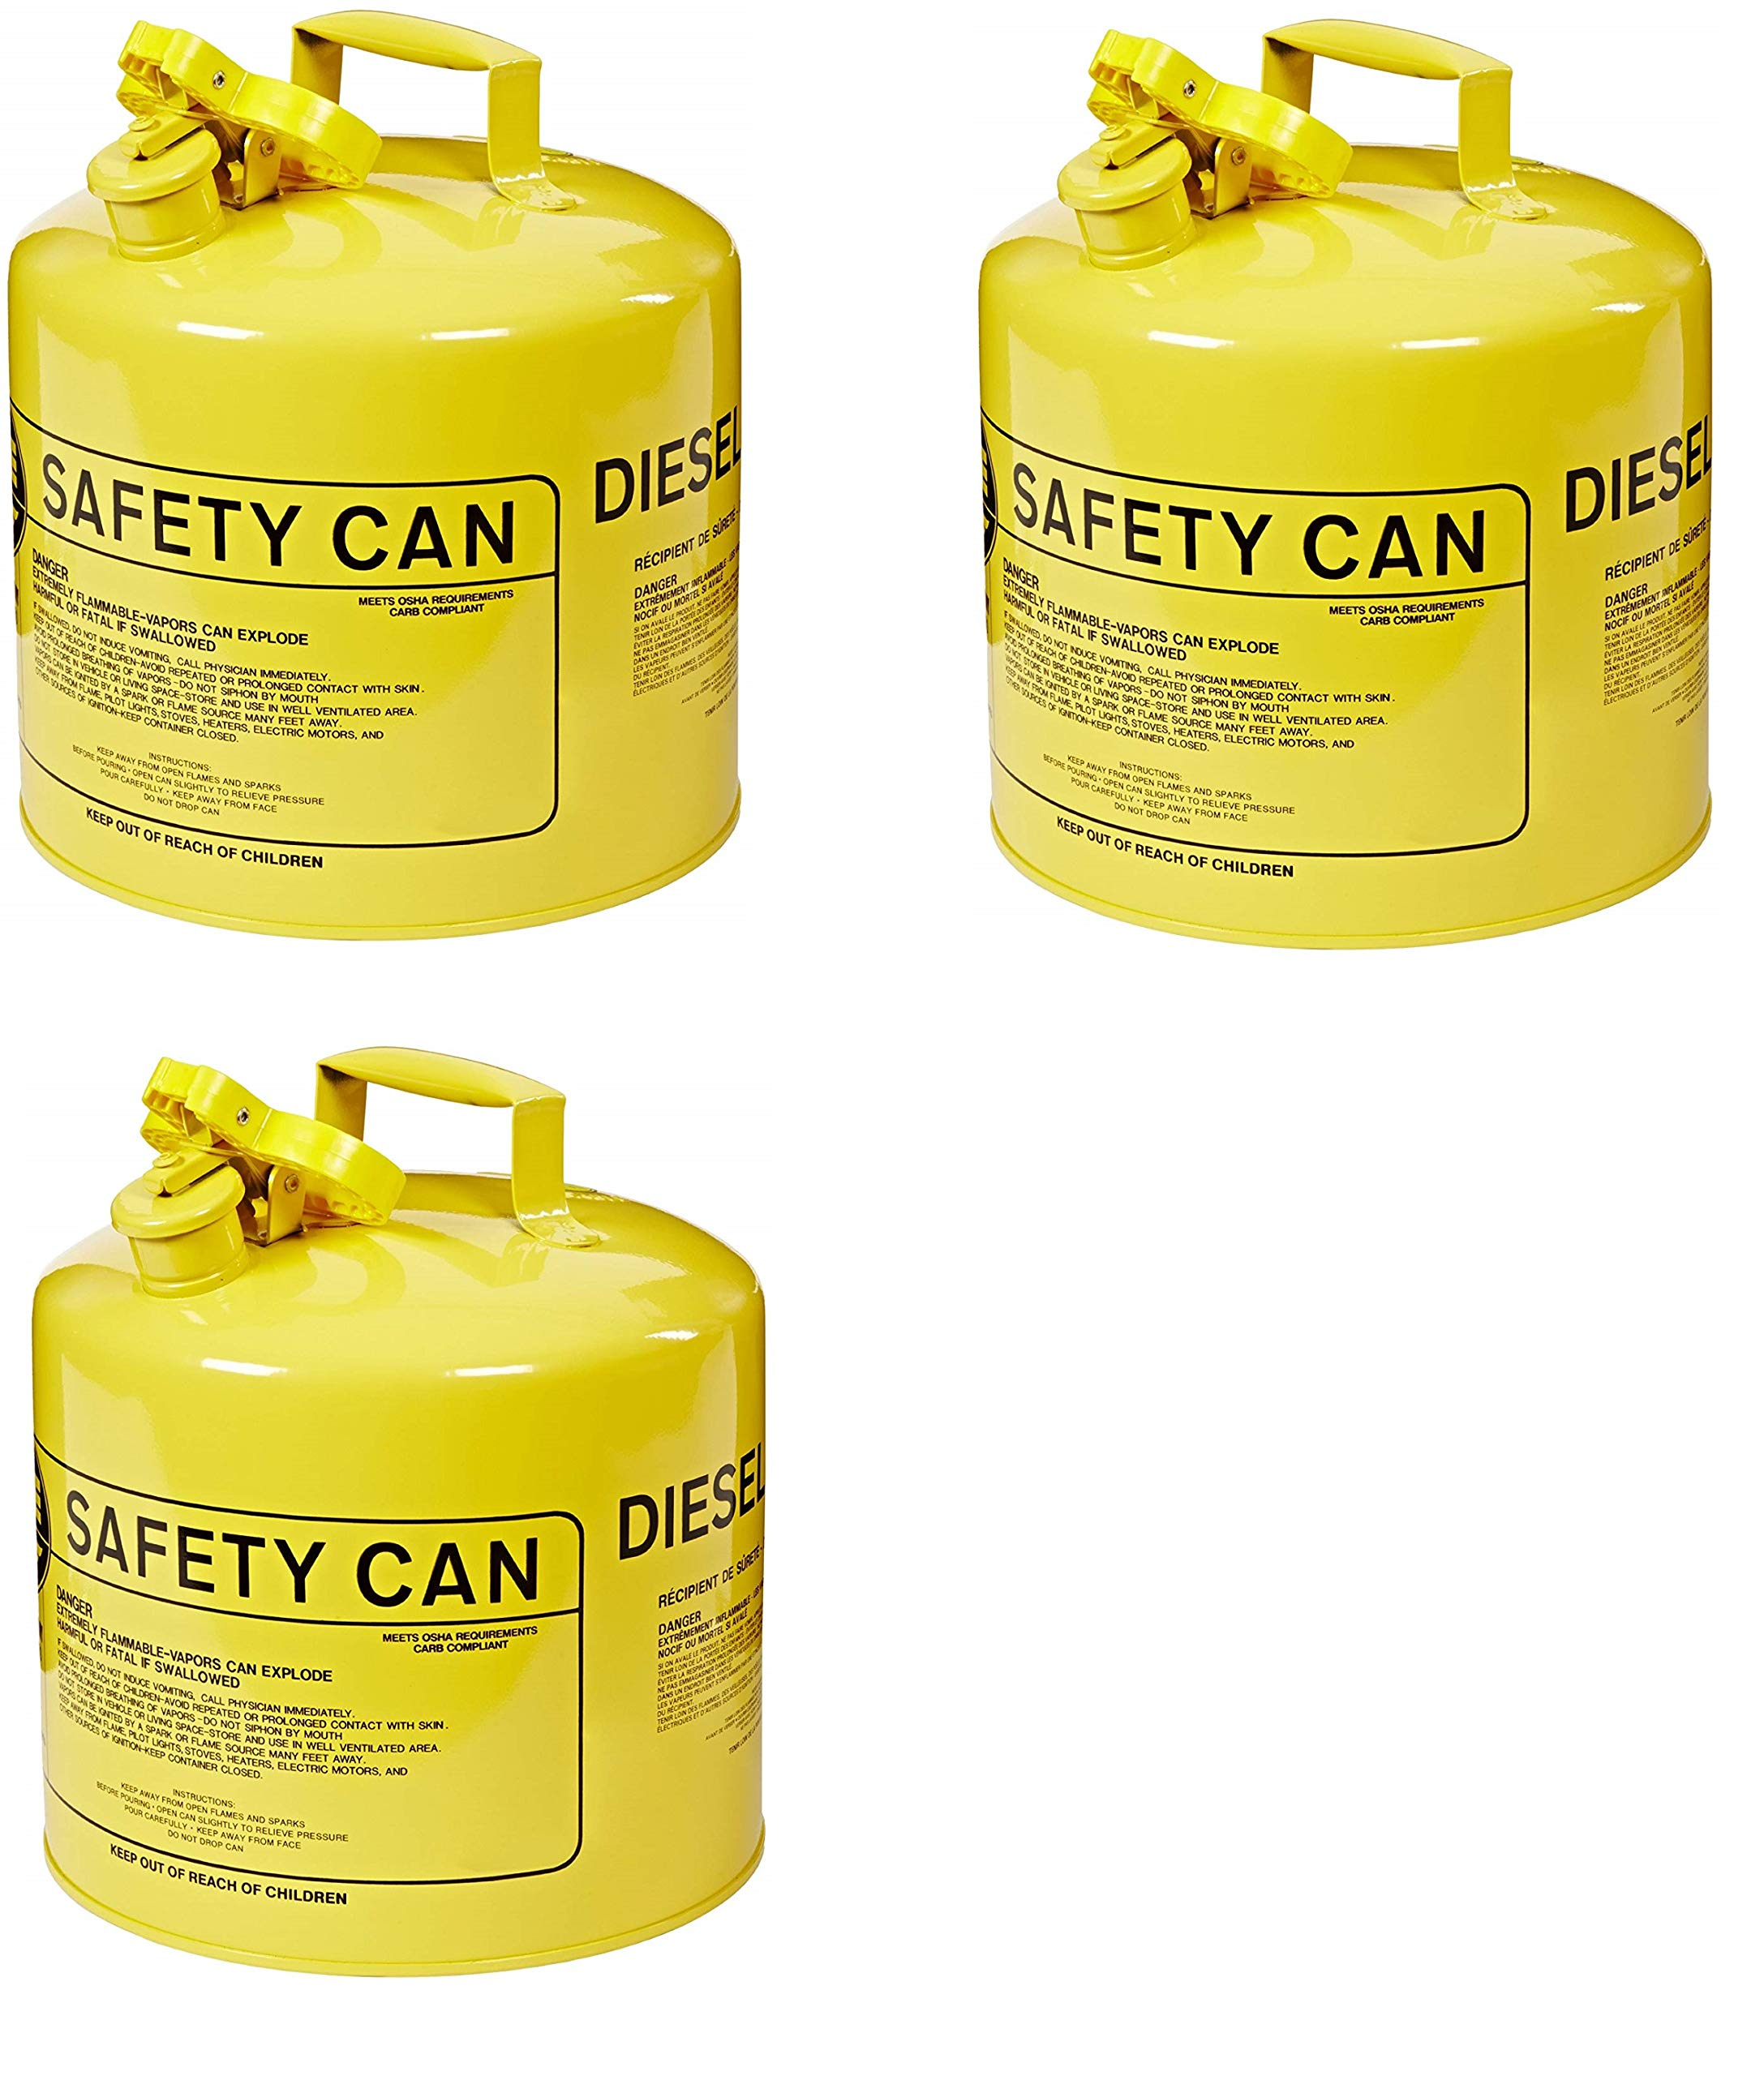 UI-50-SY Type I Metal Safety Can, Diesel, 12-1/2 in Width x 13-1/2 in Depth, 5 Gallon Capacity, Yellow